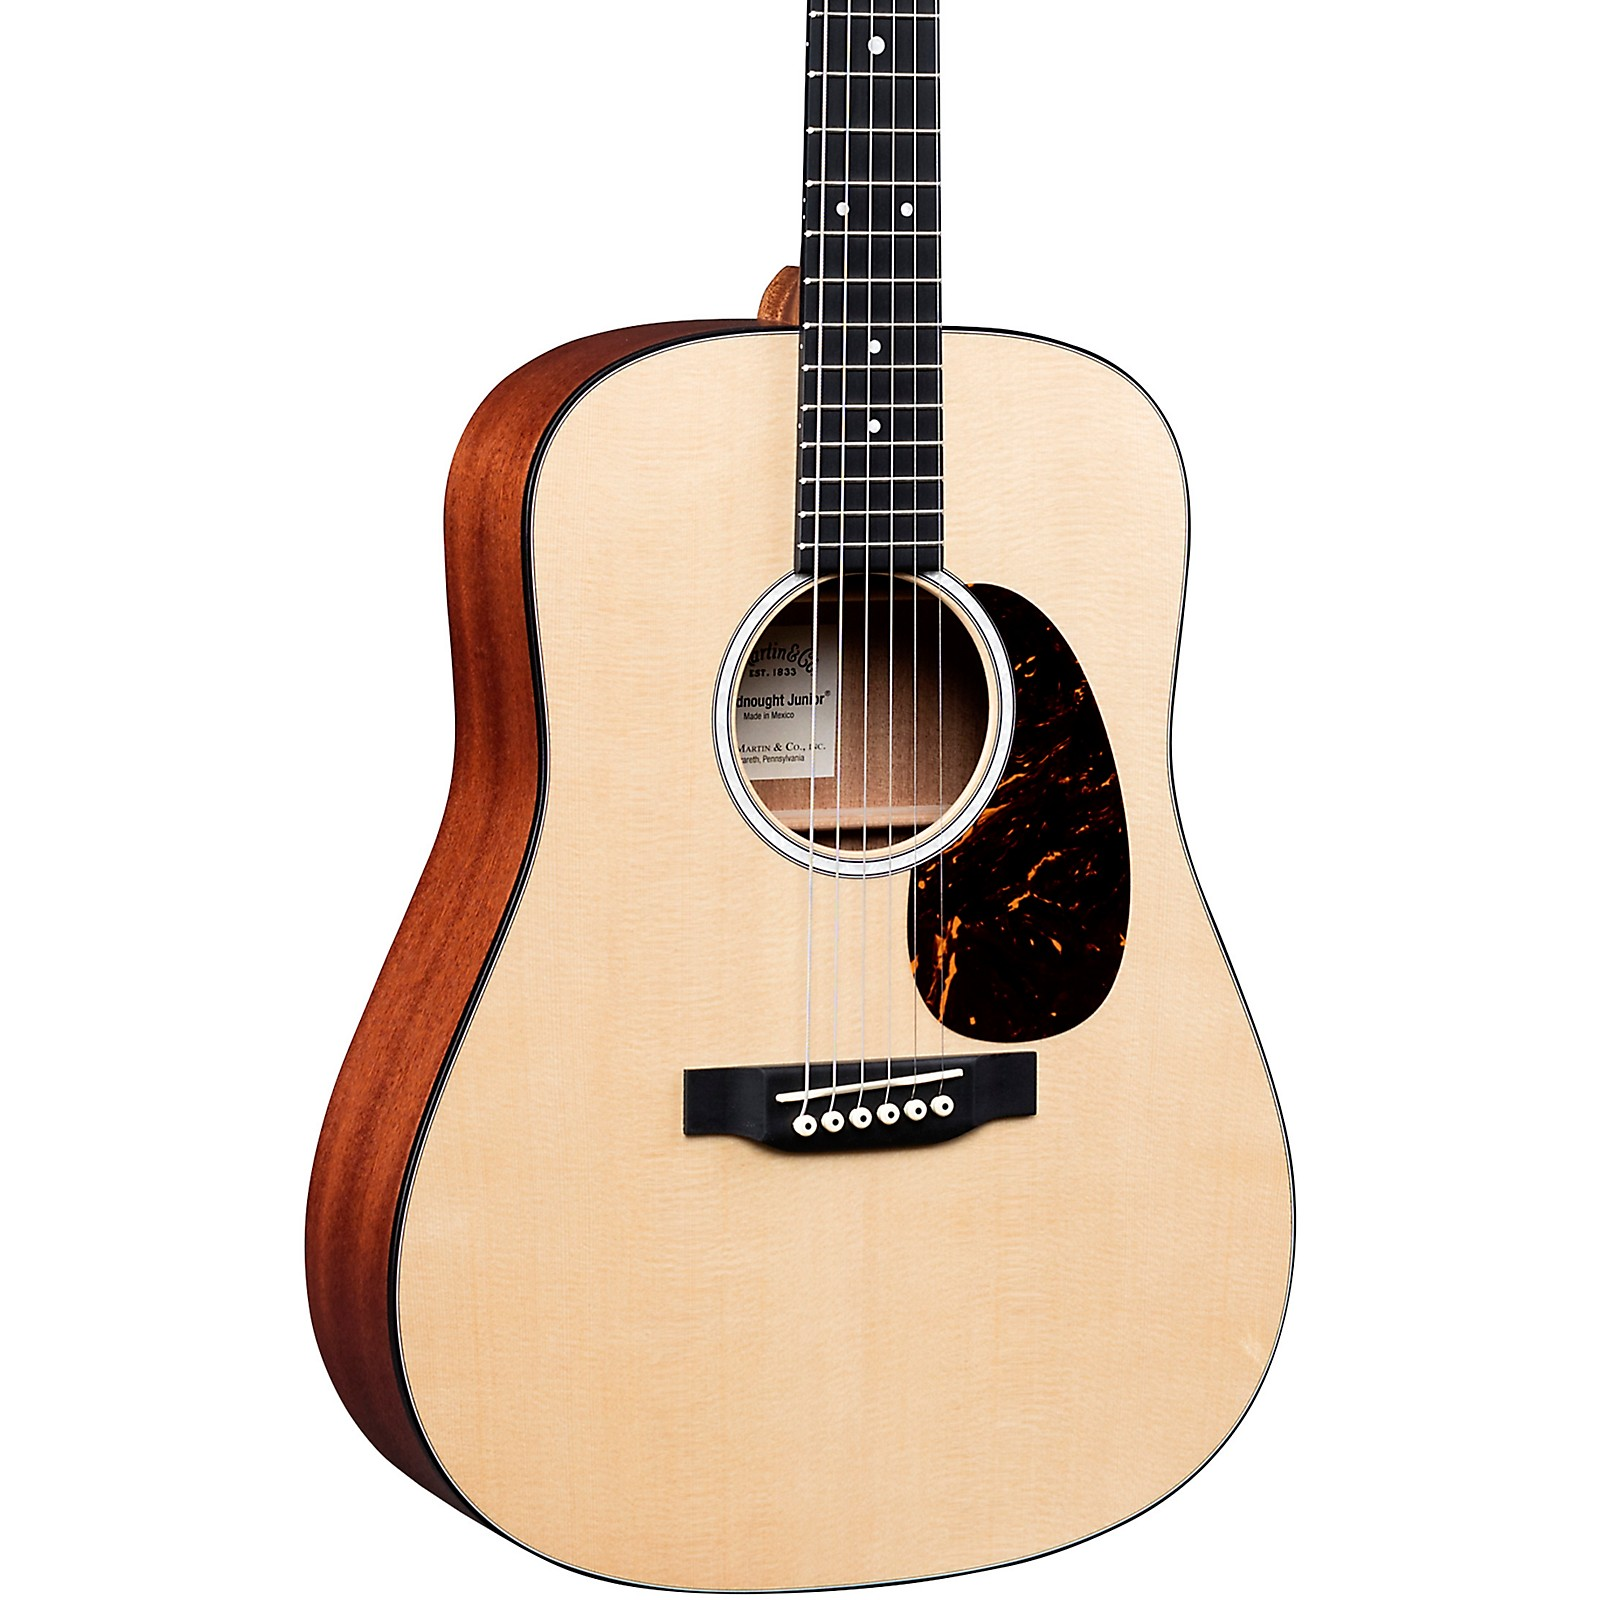 Martin DJr-10E Sitka Top Dreadnought Junior Acoustic-Electric Guitar